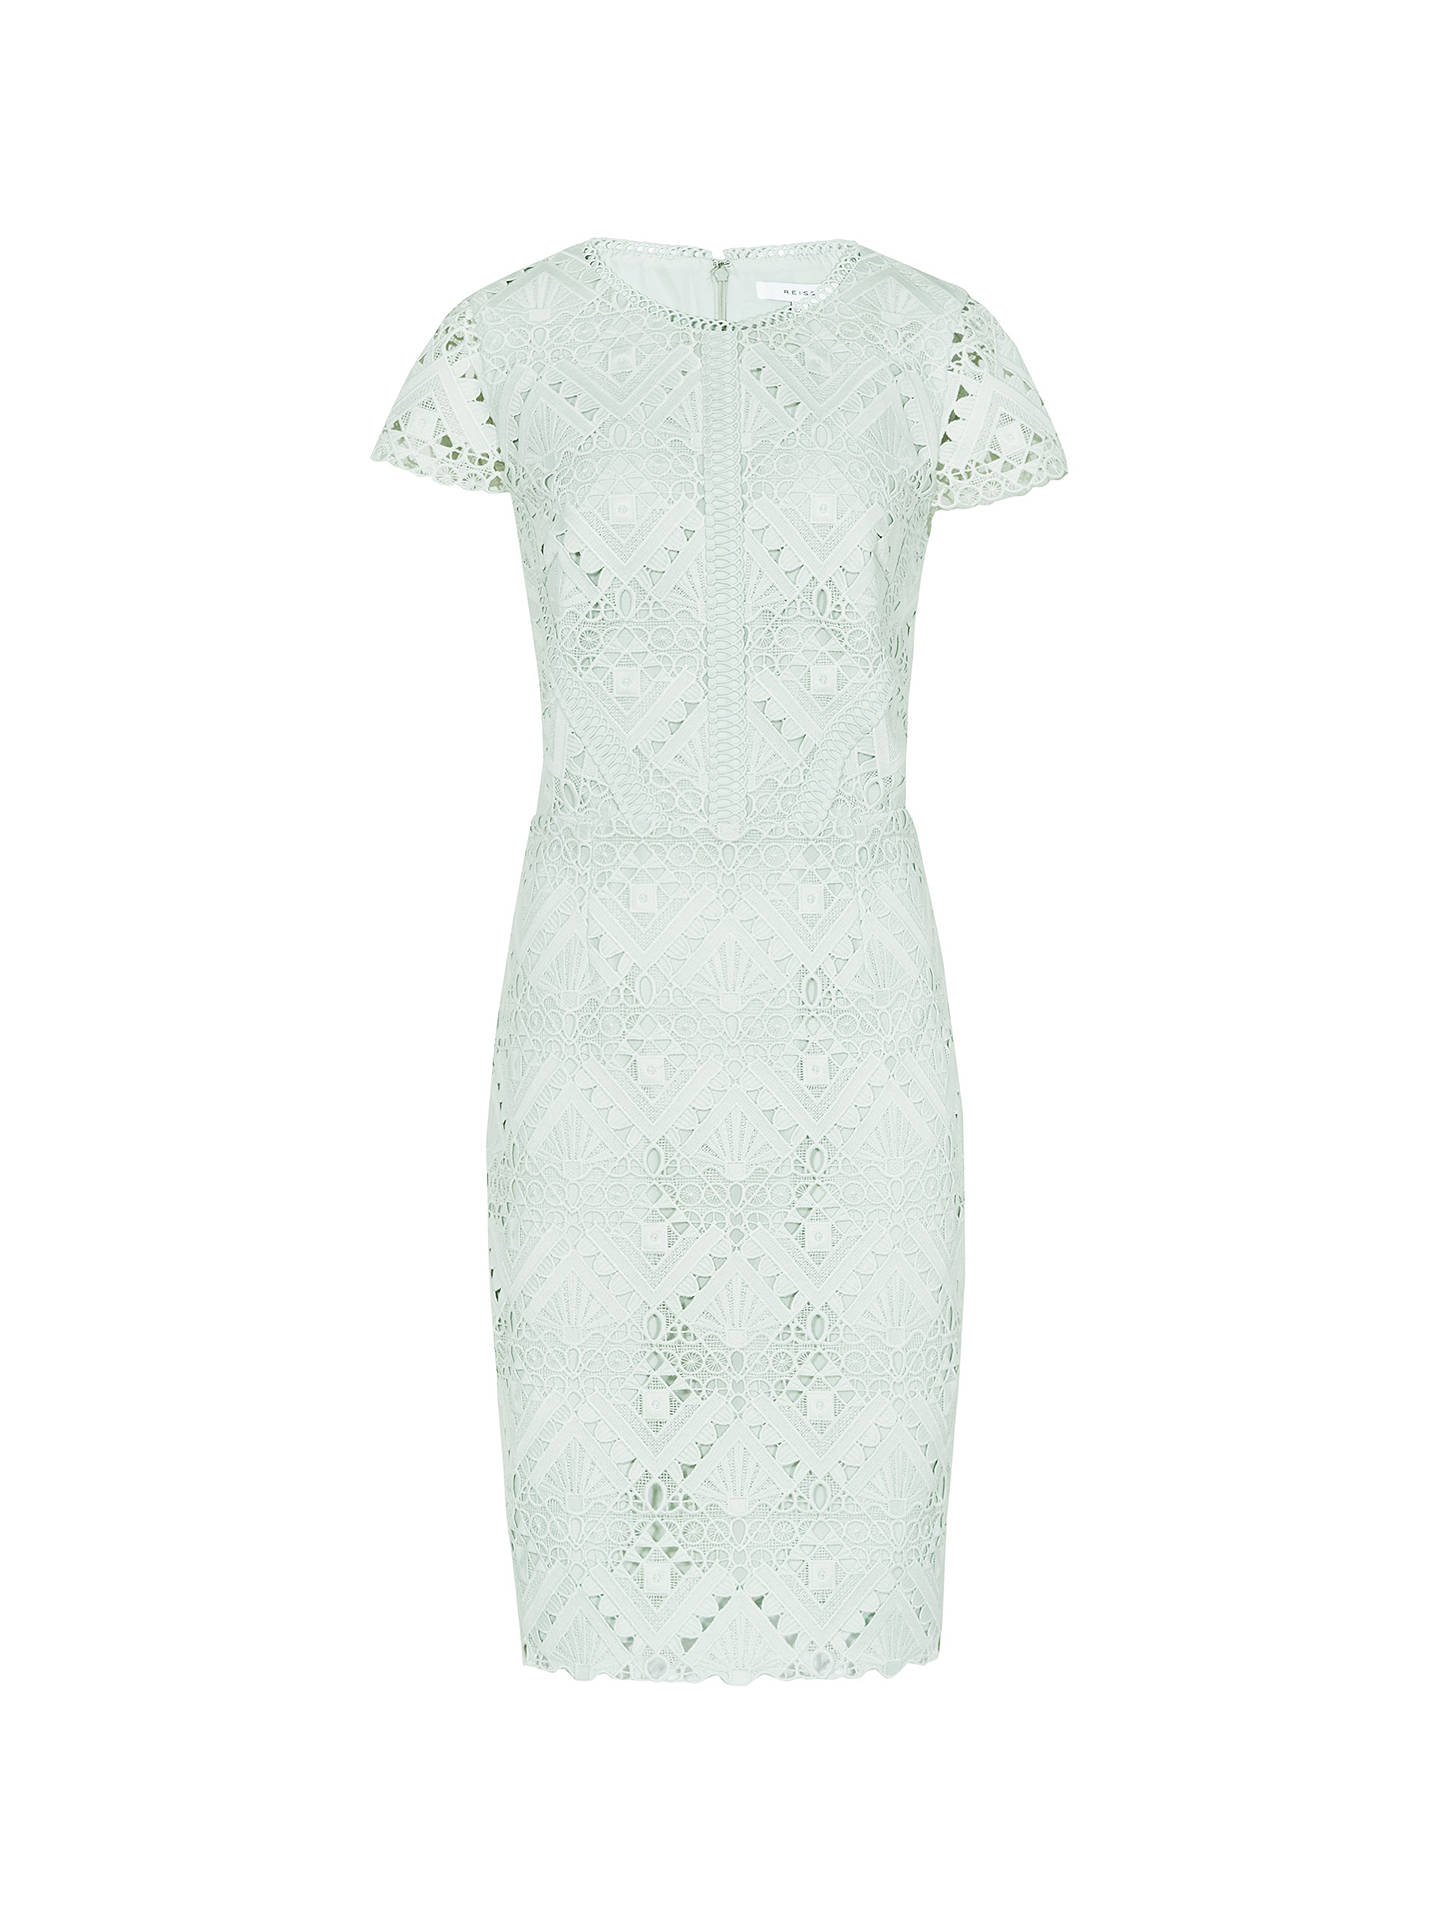 BuyReiss Liza Mixed Lace Dress, Light Sage, 6 Online at johnlewis.com